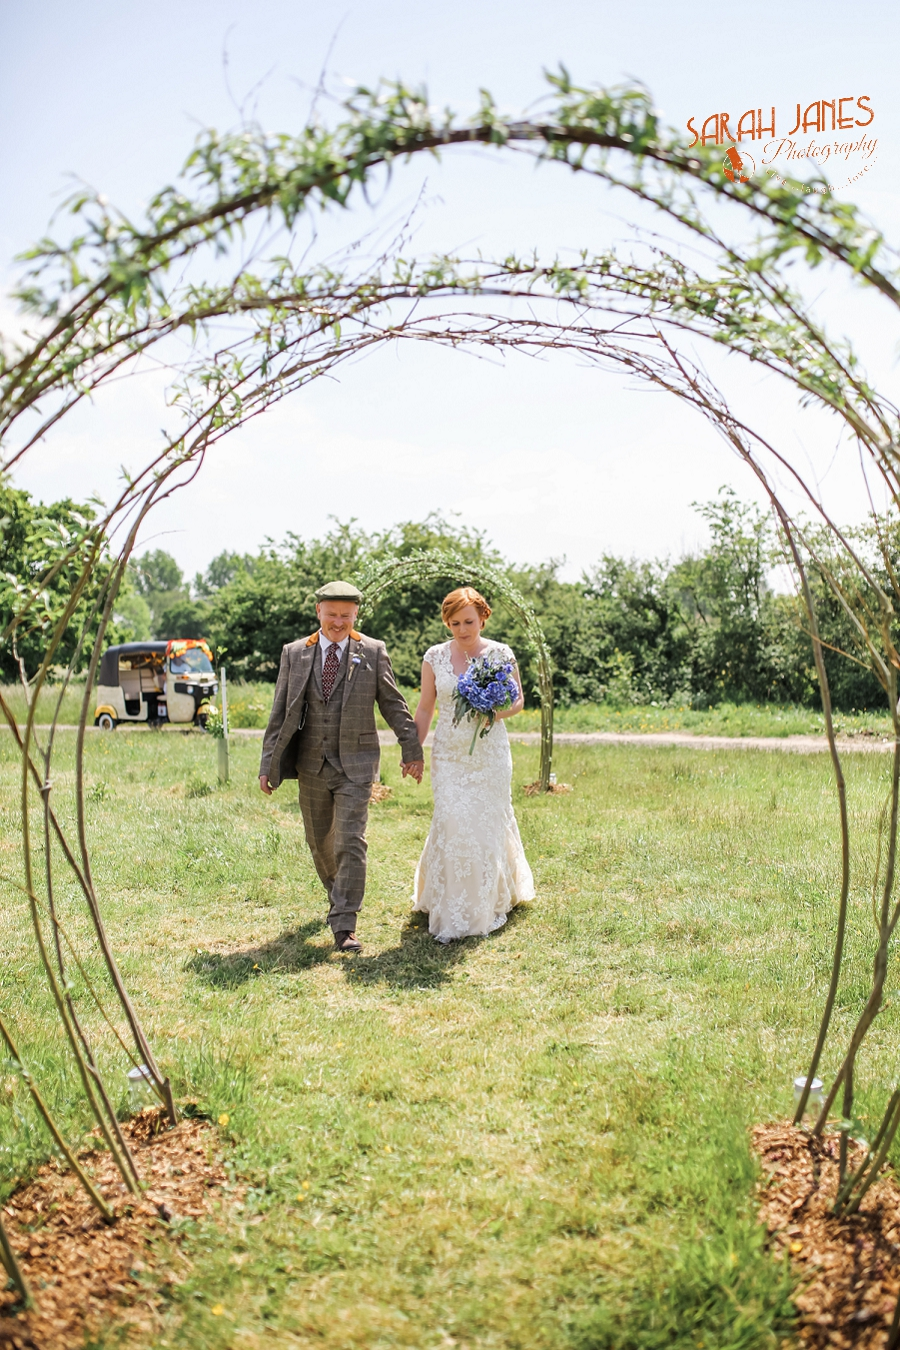 Sarah Janes Photography, Chester Wedding photographer, Kings Acre Farm wedding, Kings Acre farm wedding photography_0011.jpg